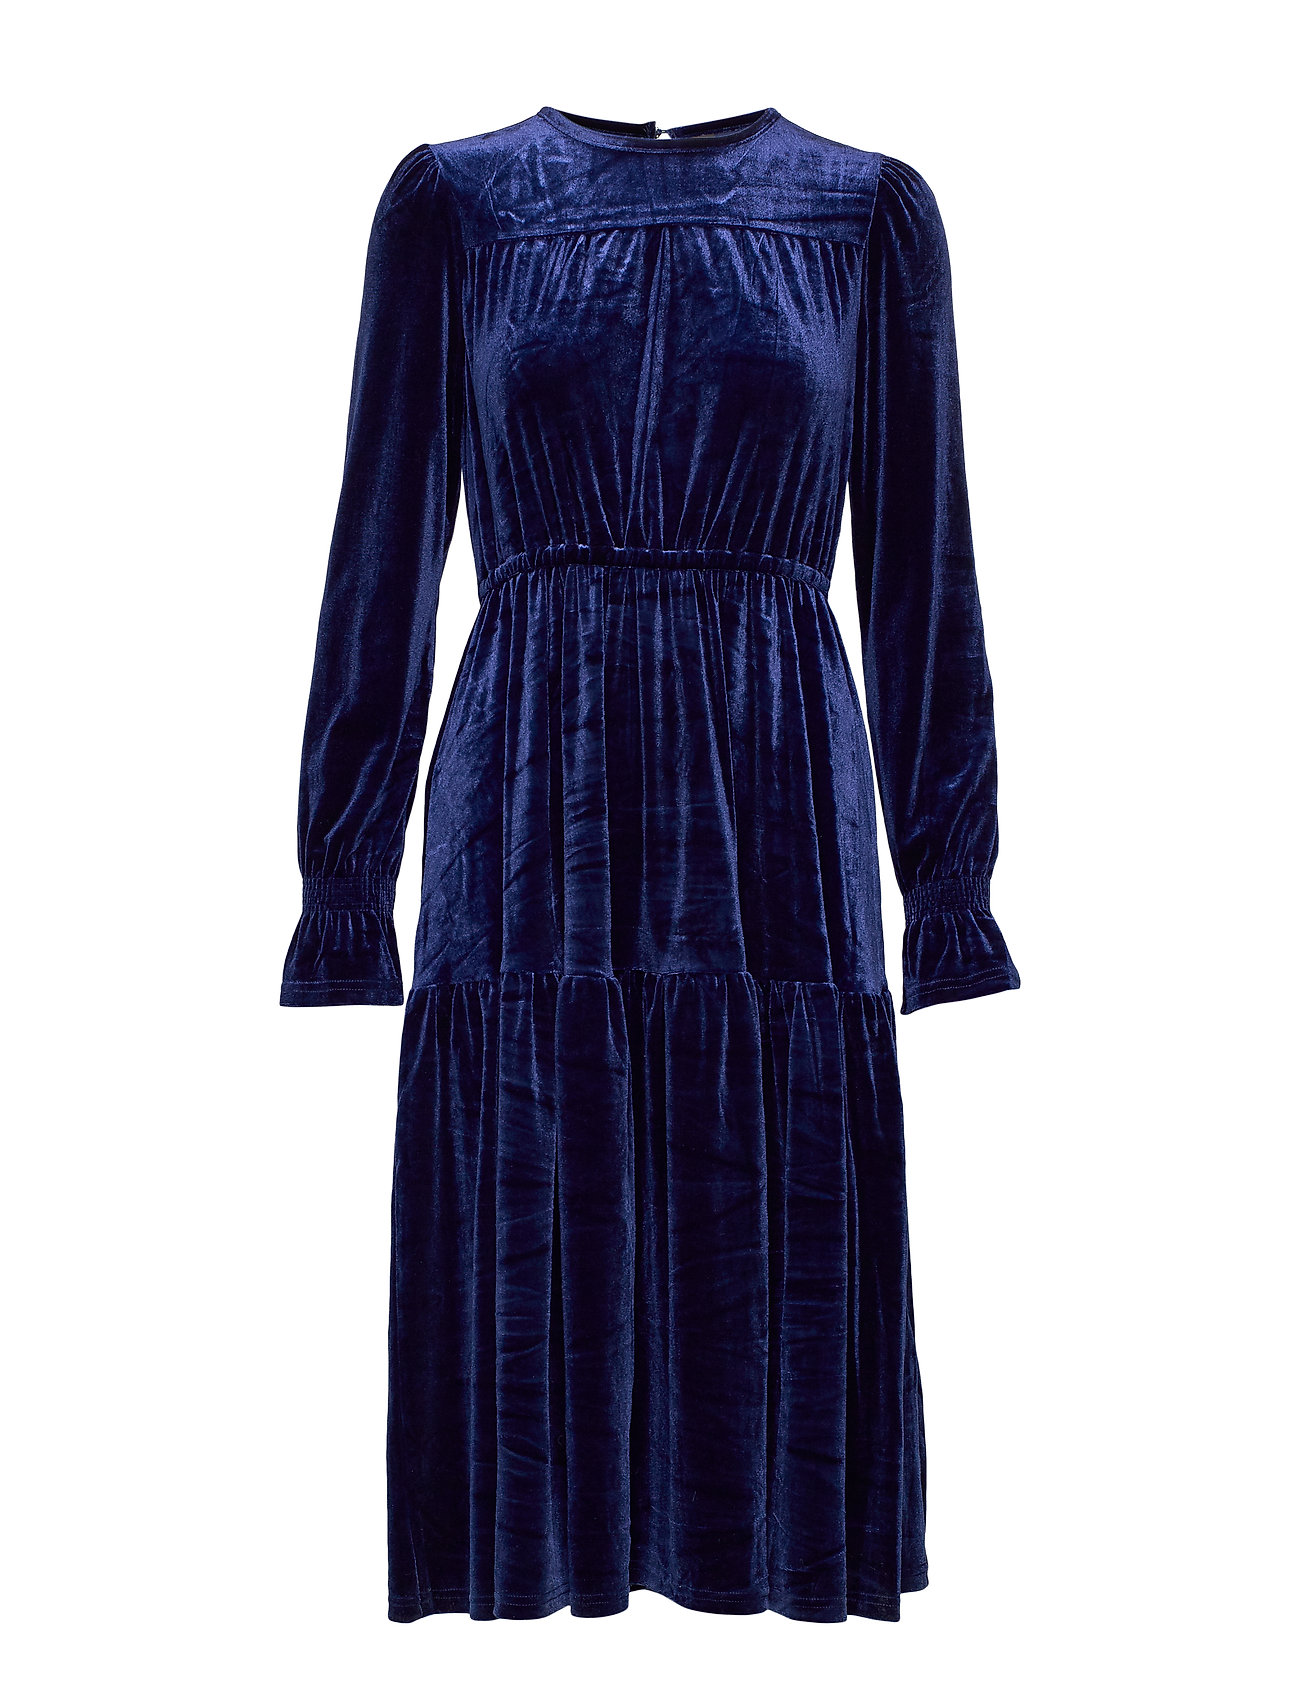 YAS YASBIRCA LS DRESS BOOZT D2D - NAVY BLAZER